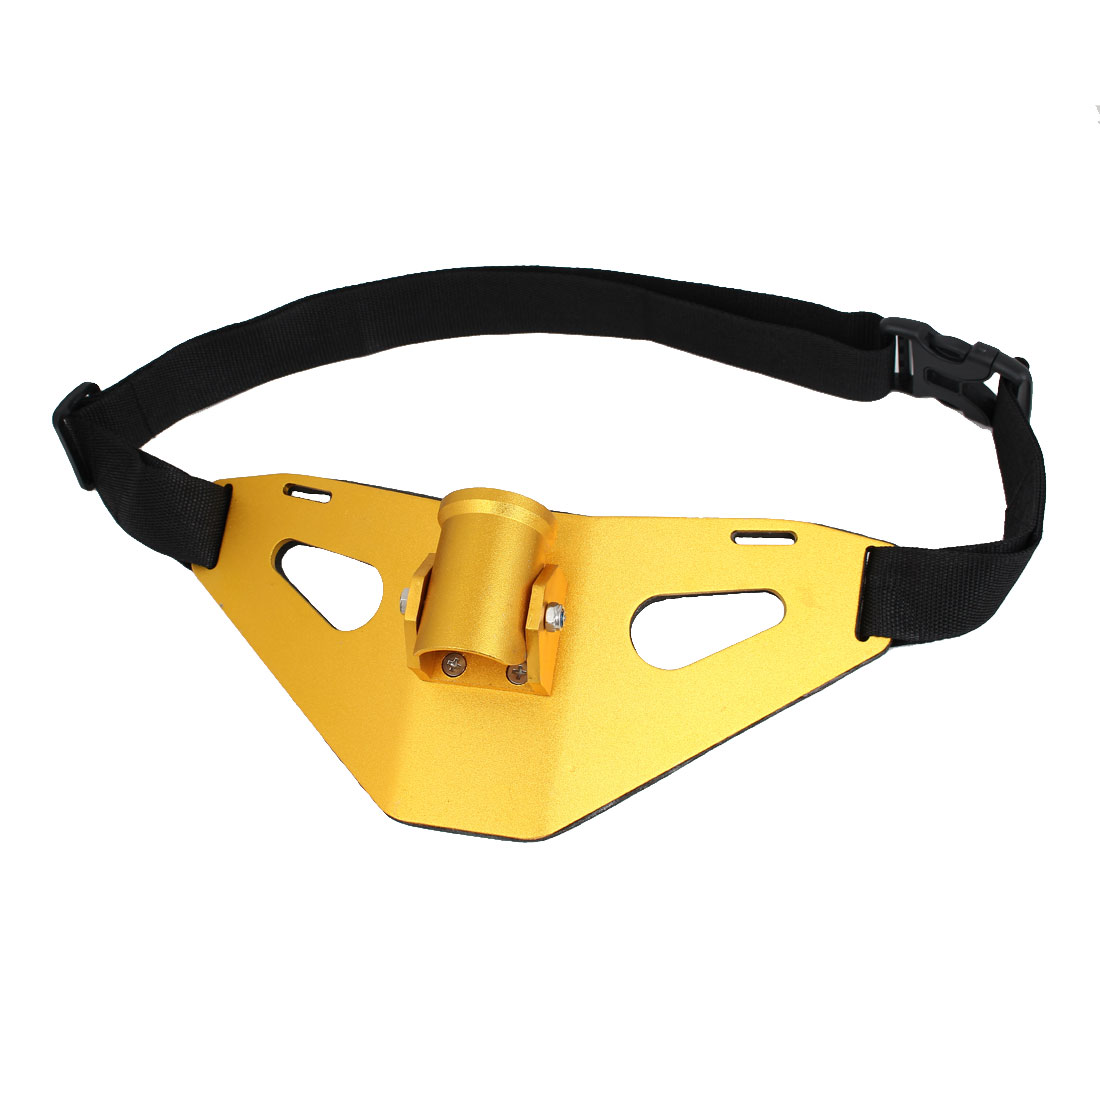 Fishing Rod Pole Stand Holder Padded Adjustable Waist Belt Harness Yellow